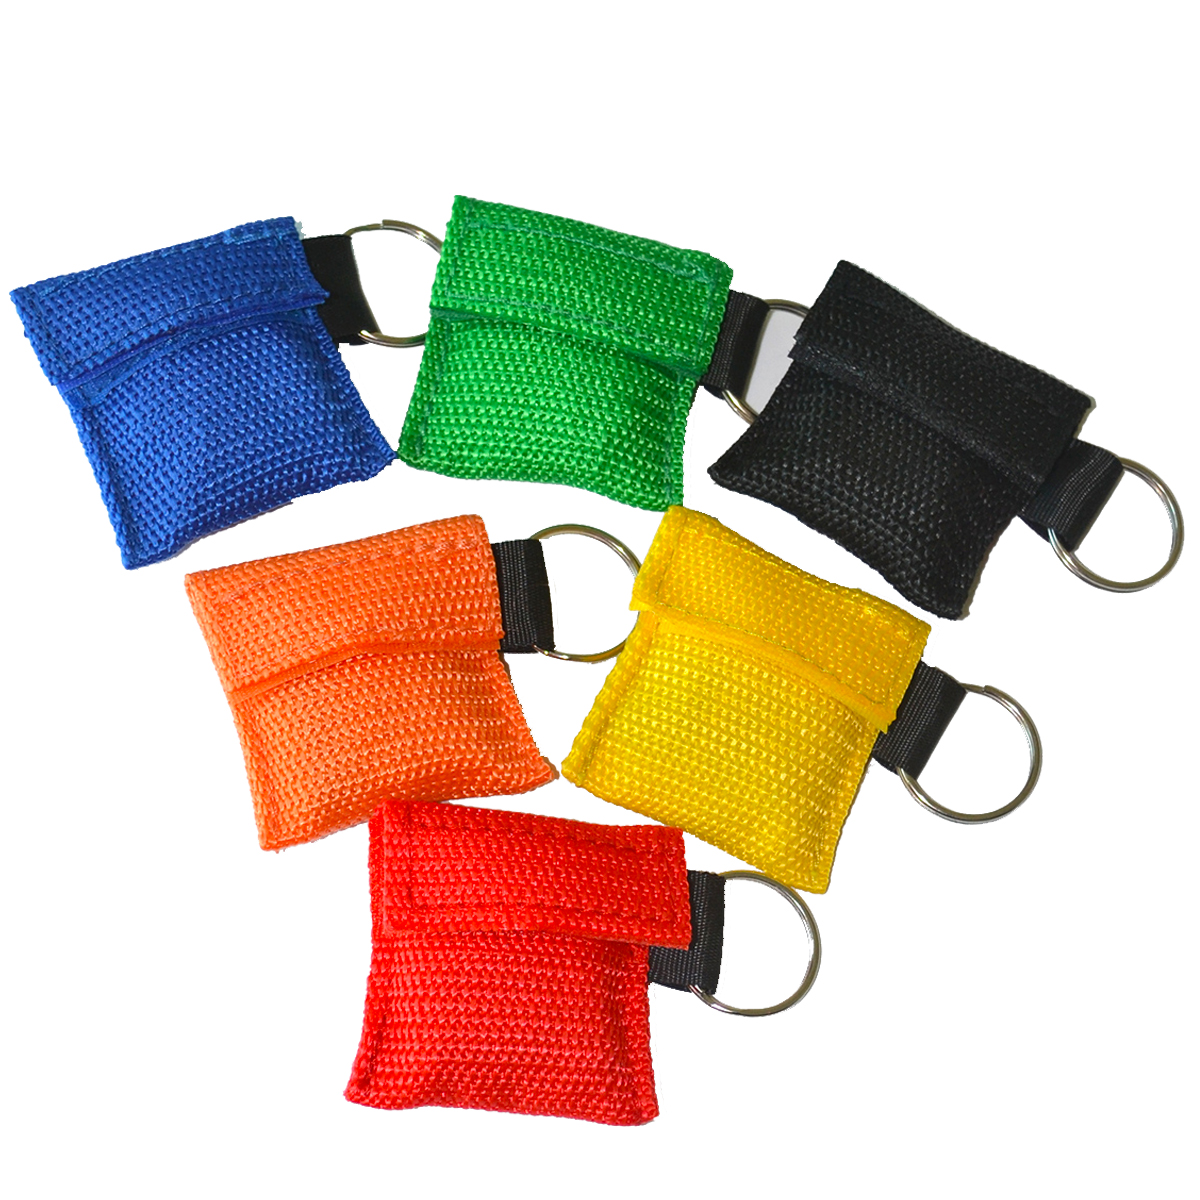 60Pcs/Lot CPR Mask With Keychain CPR Face Shield For CPR/AED Training First Aid Rescue Survial Kit 6 Color For Chosen